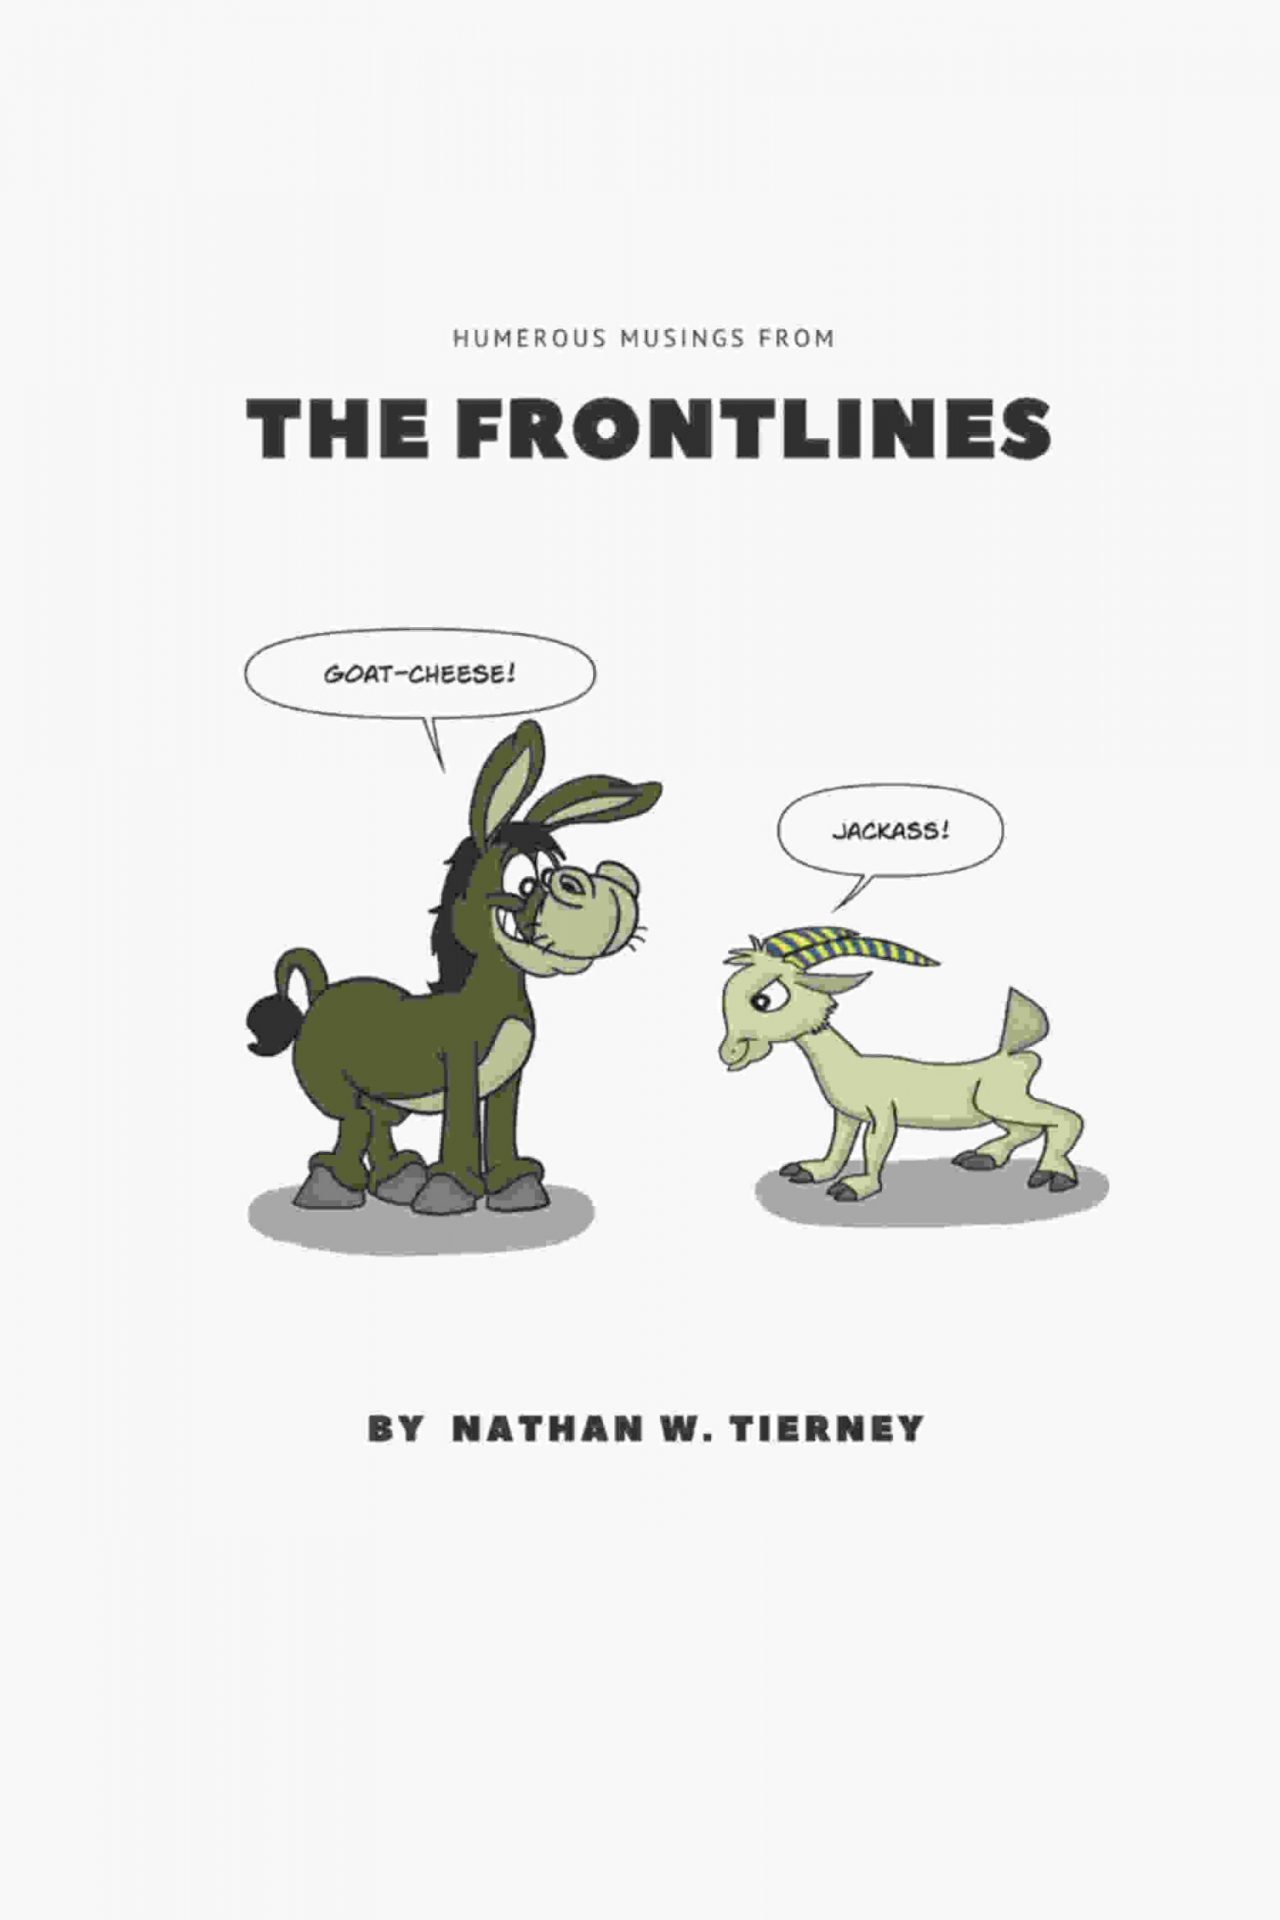 The Frontlines comic book by Nathan Tierney.